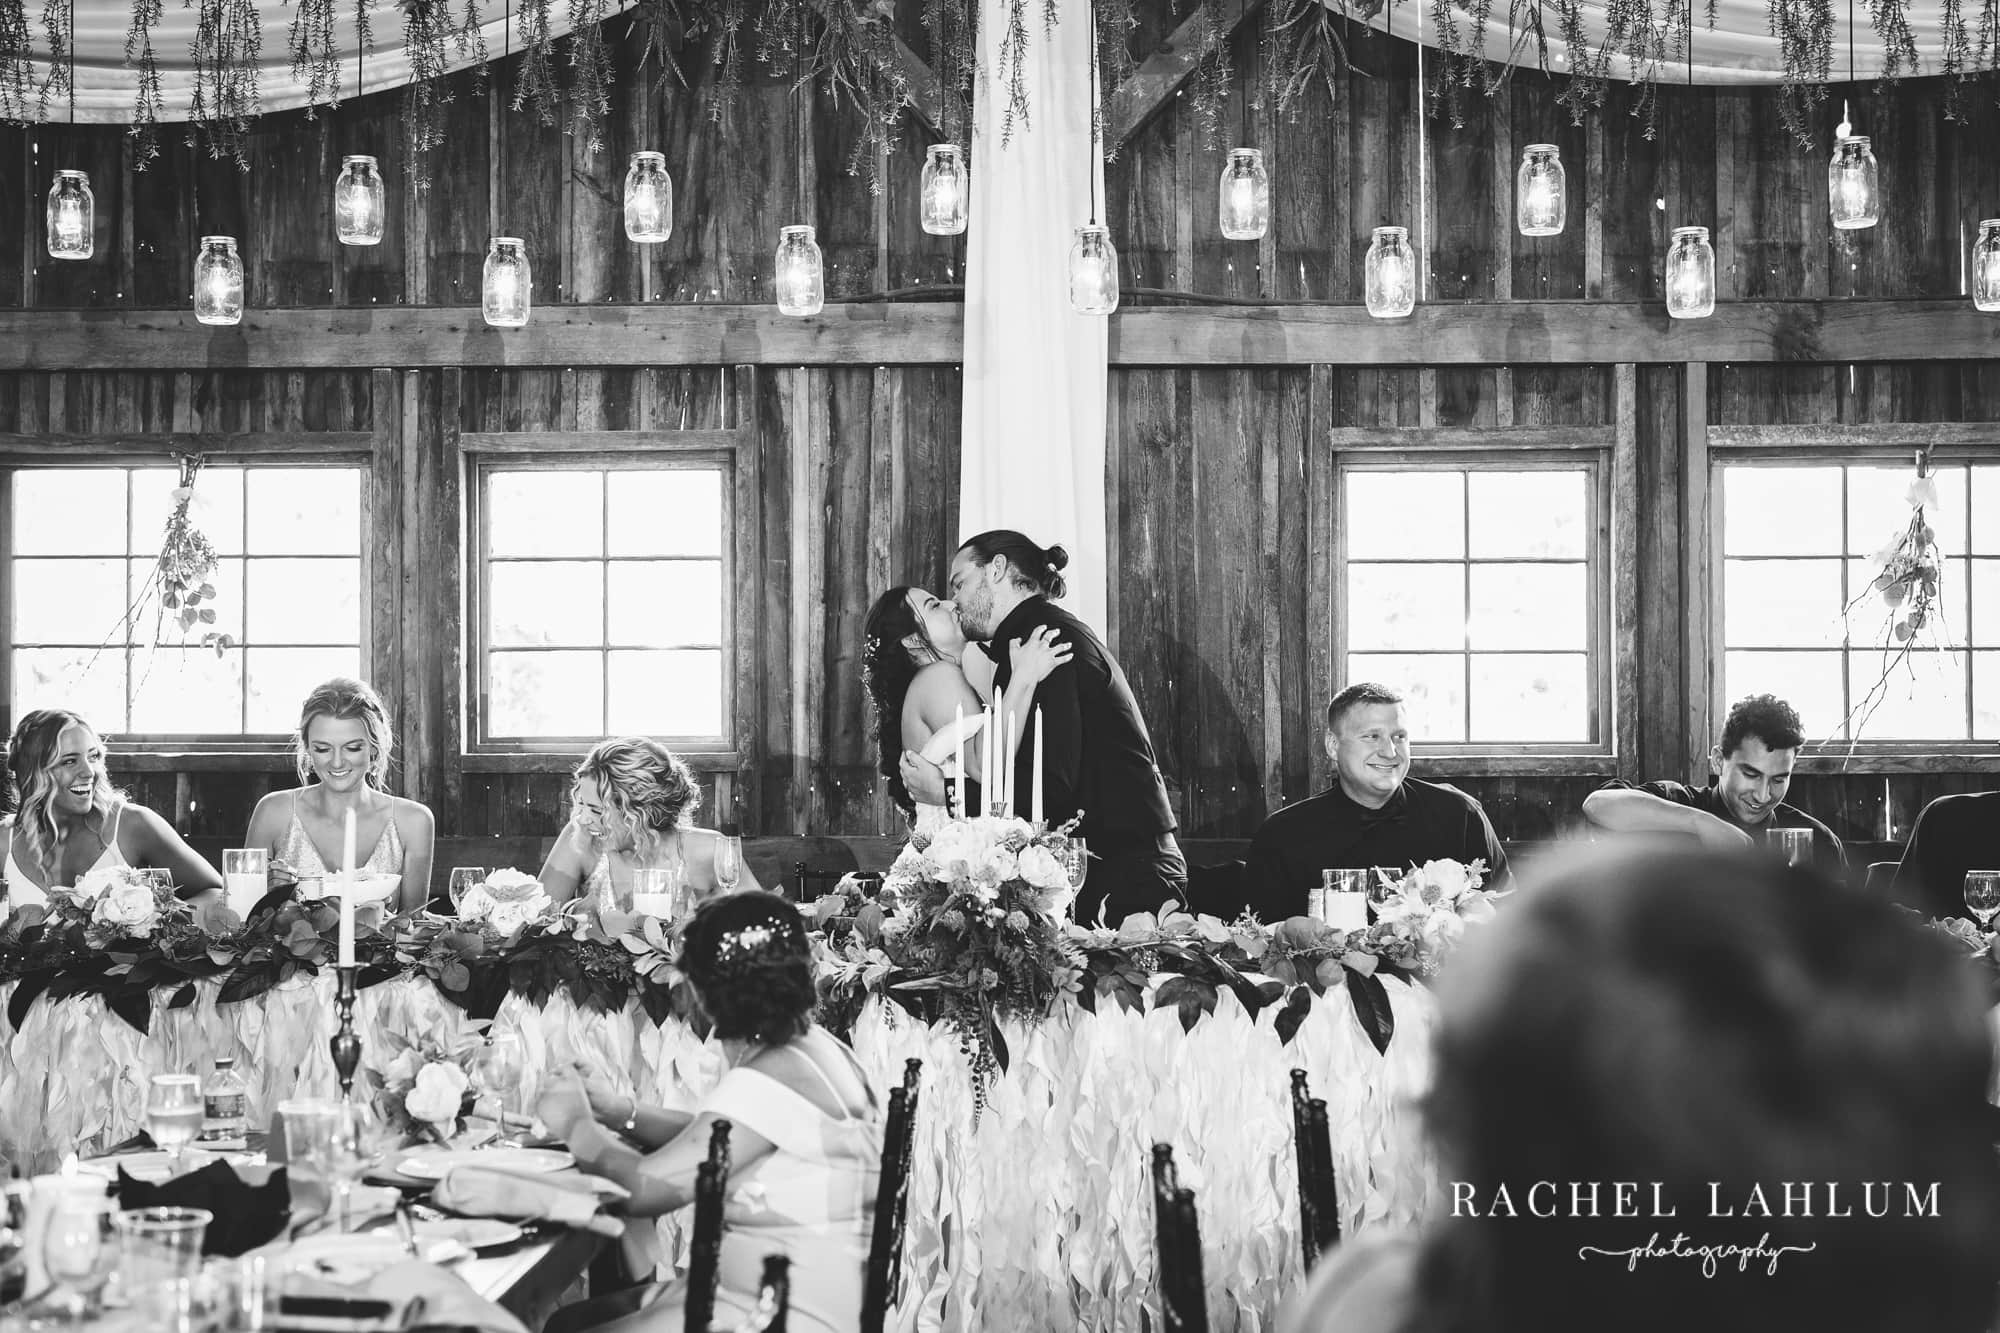 Bride and groom kiss during reception of wedding at Wilderness Wedding Barn in Bigfork, MN.